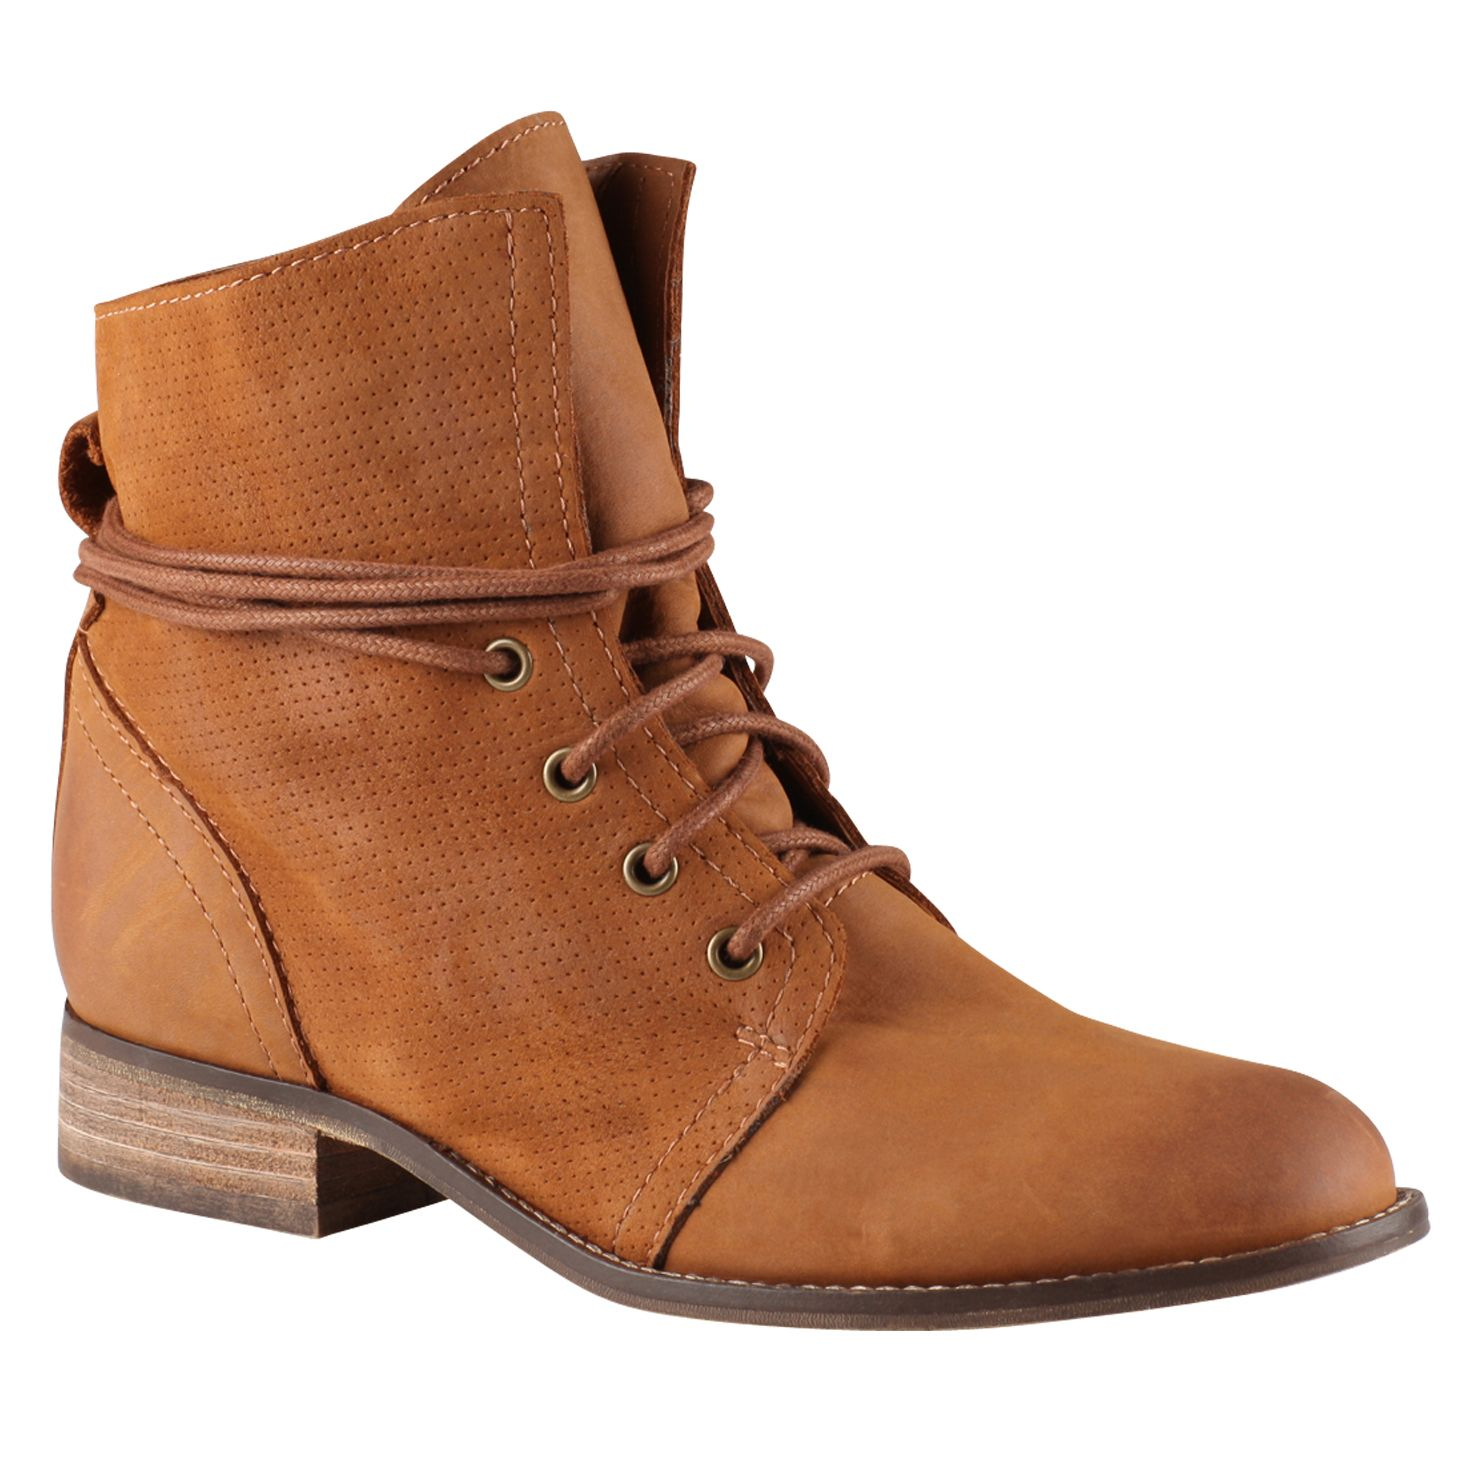 Prelidda almond toe lace up boots